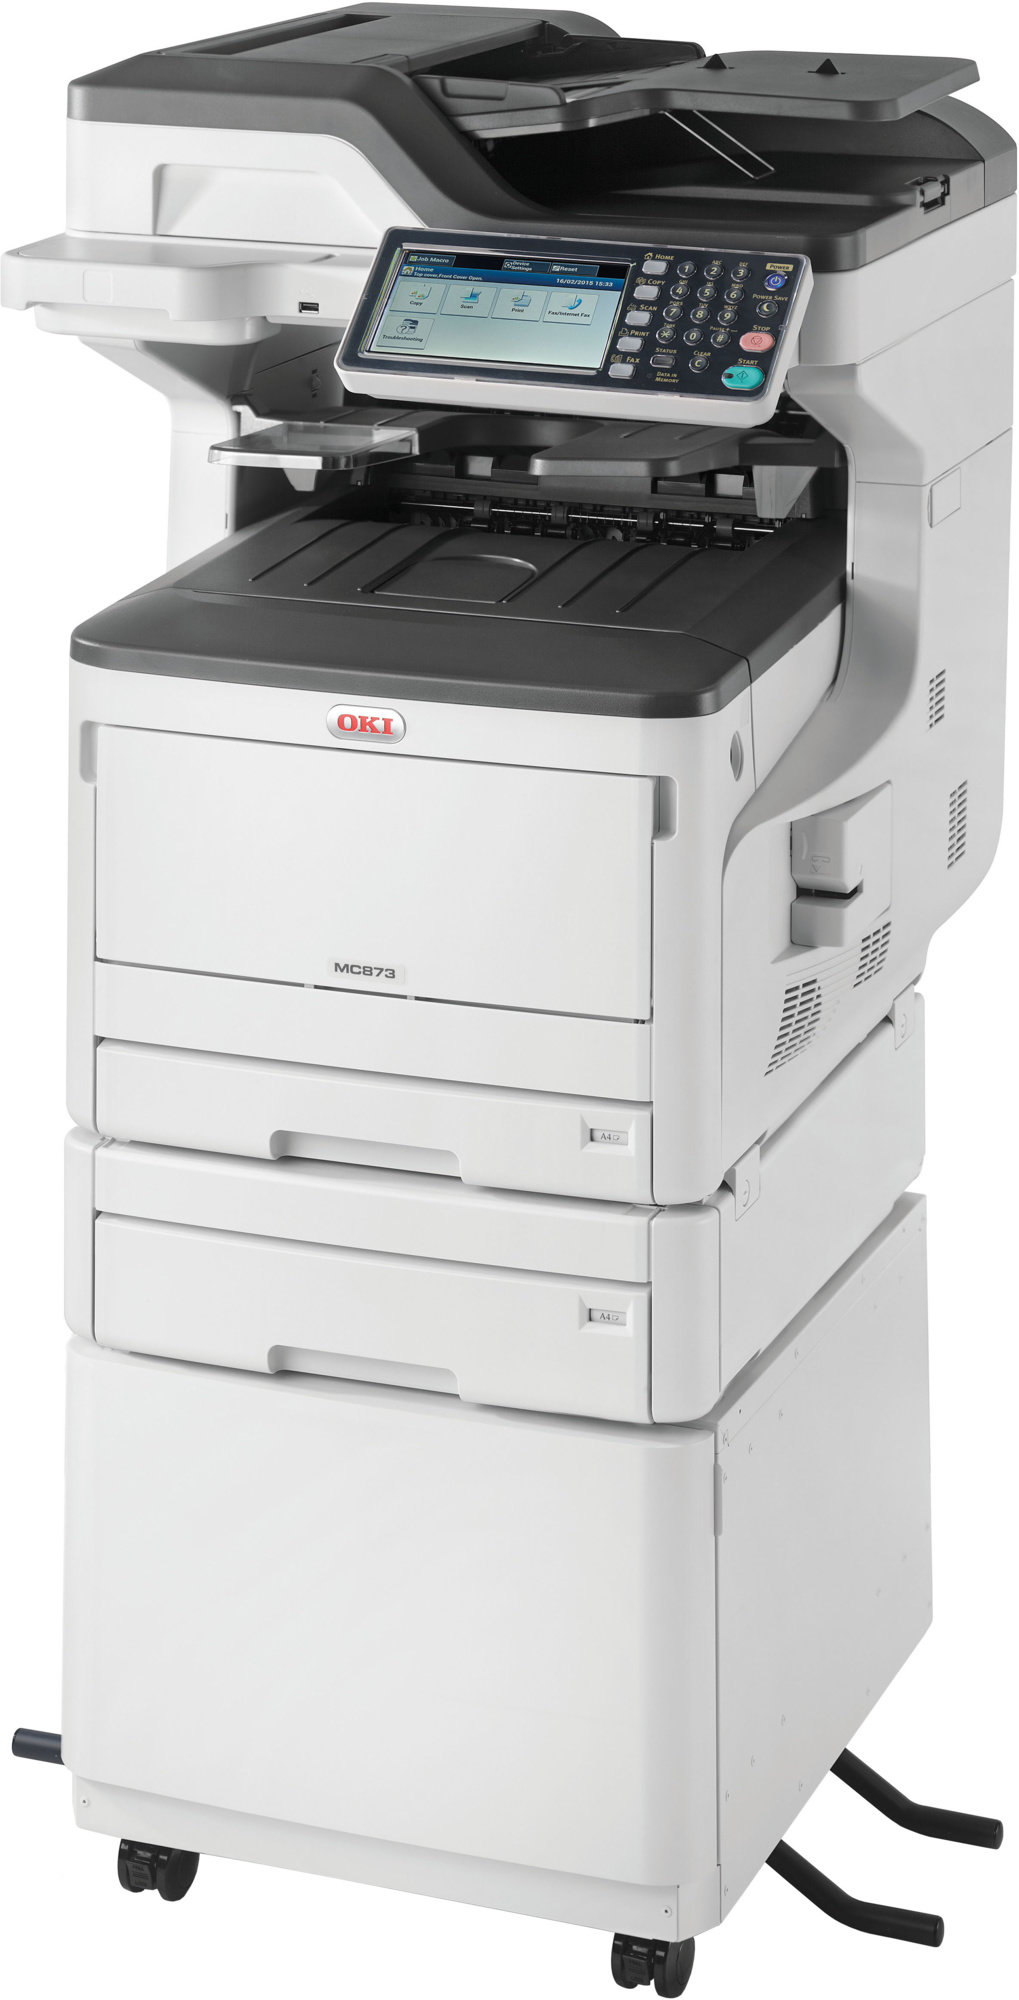 Oki MC873dnct A3 35ppm ProQ2400DPI, PCL/PS,USB,LAN (Print/Scan/Copy/Fax), 250GB HDD